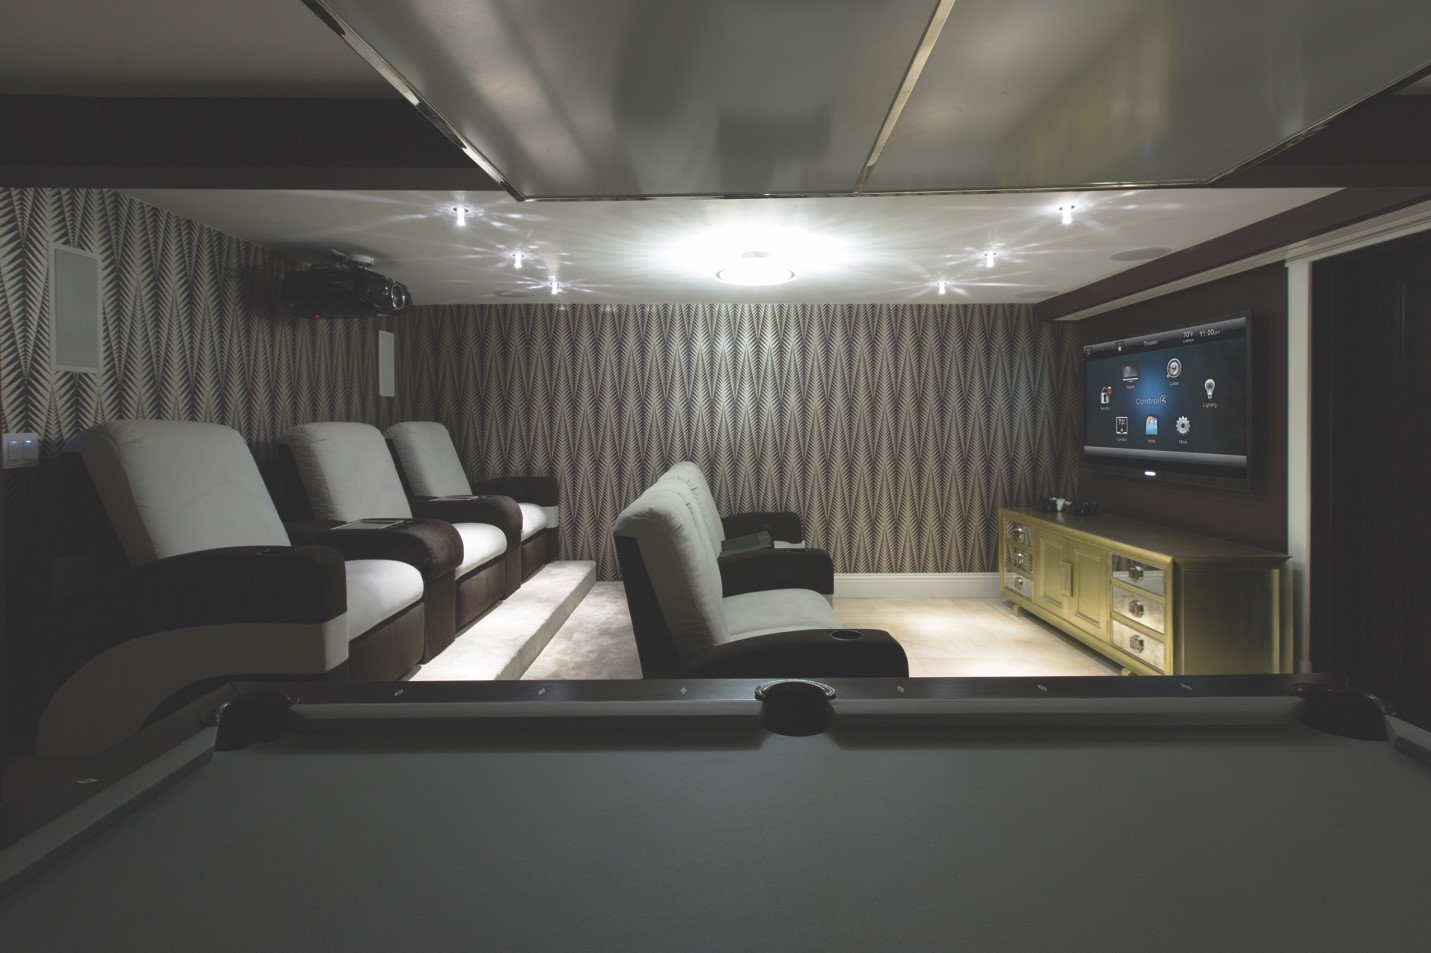 Find the Right High-End Receiver for Your Home Theater System